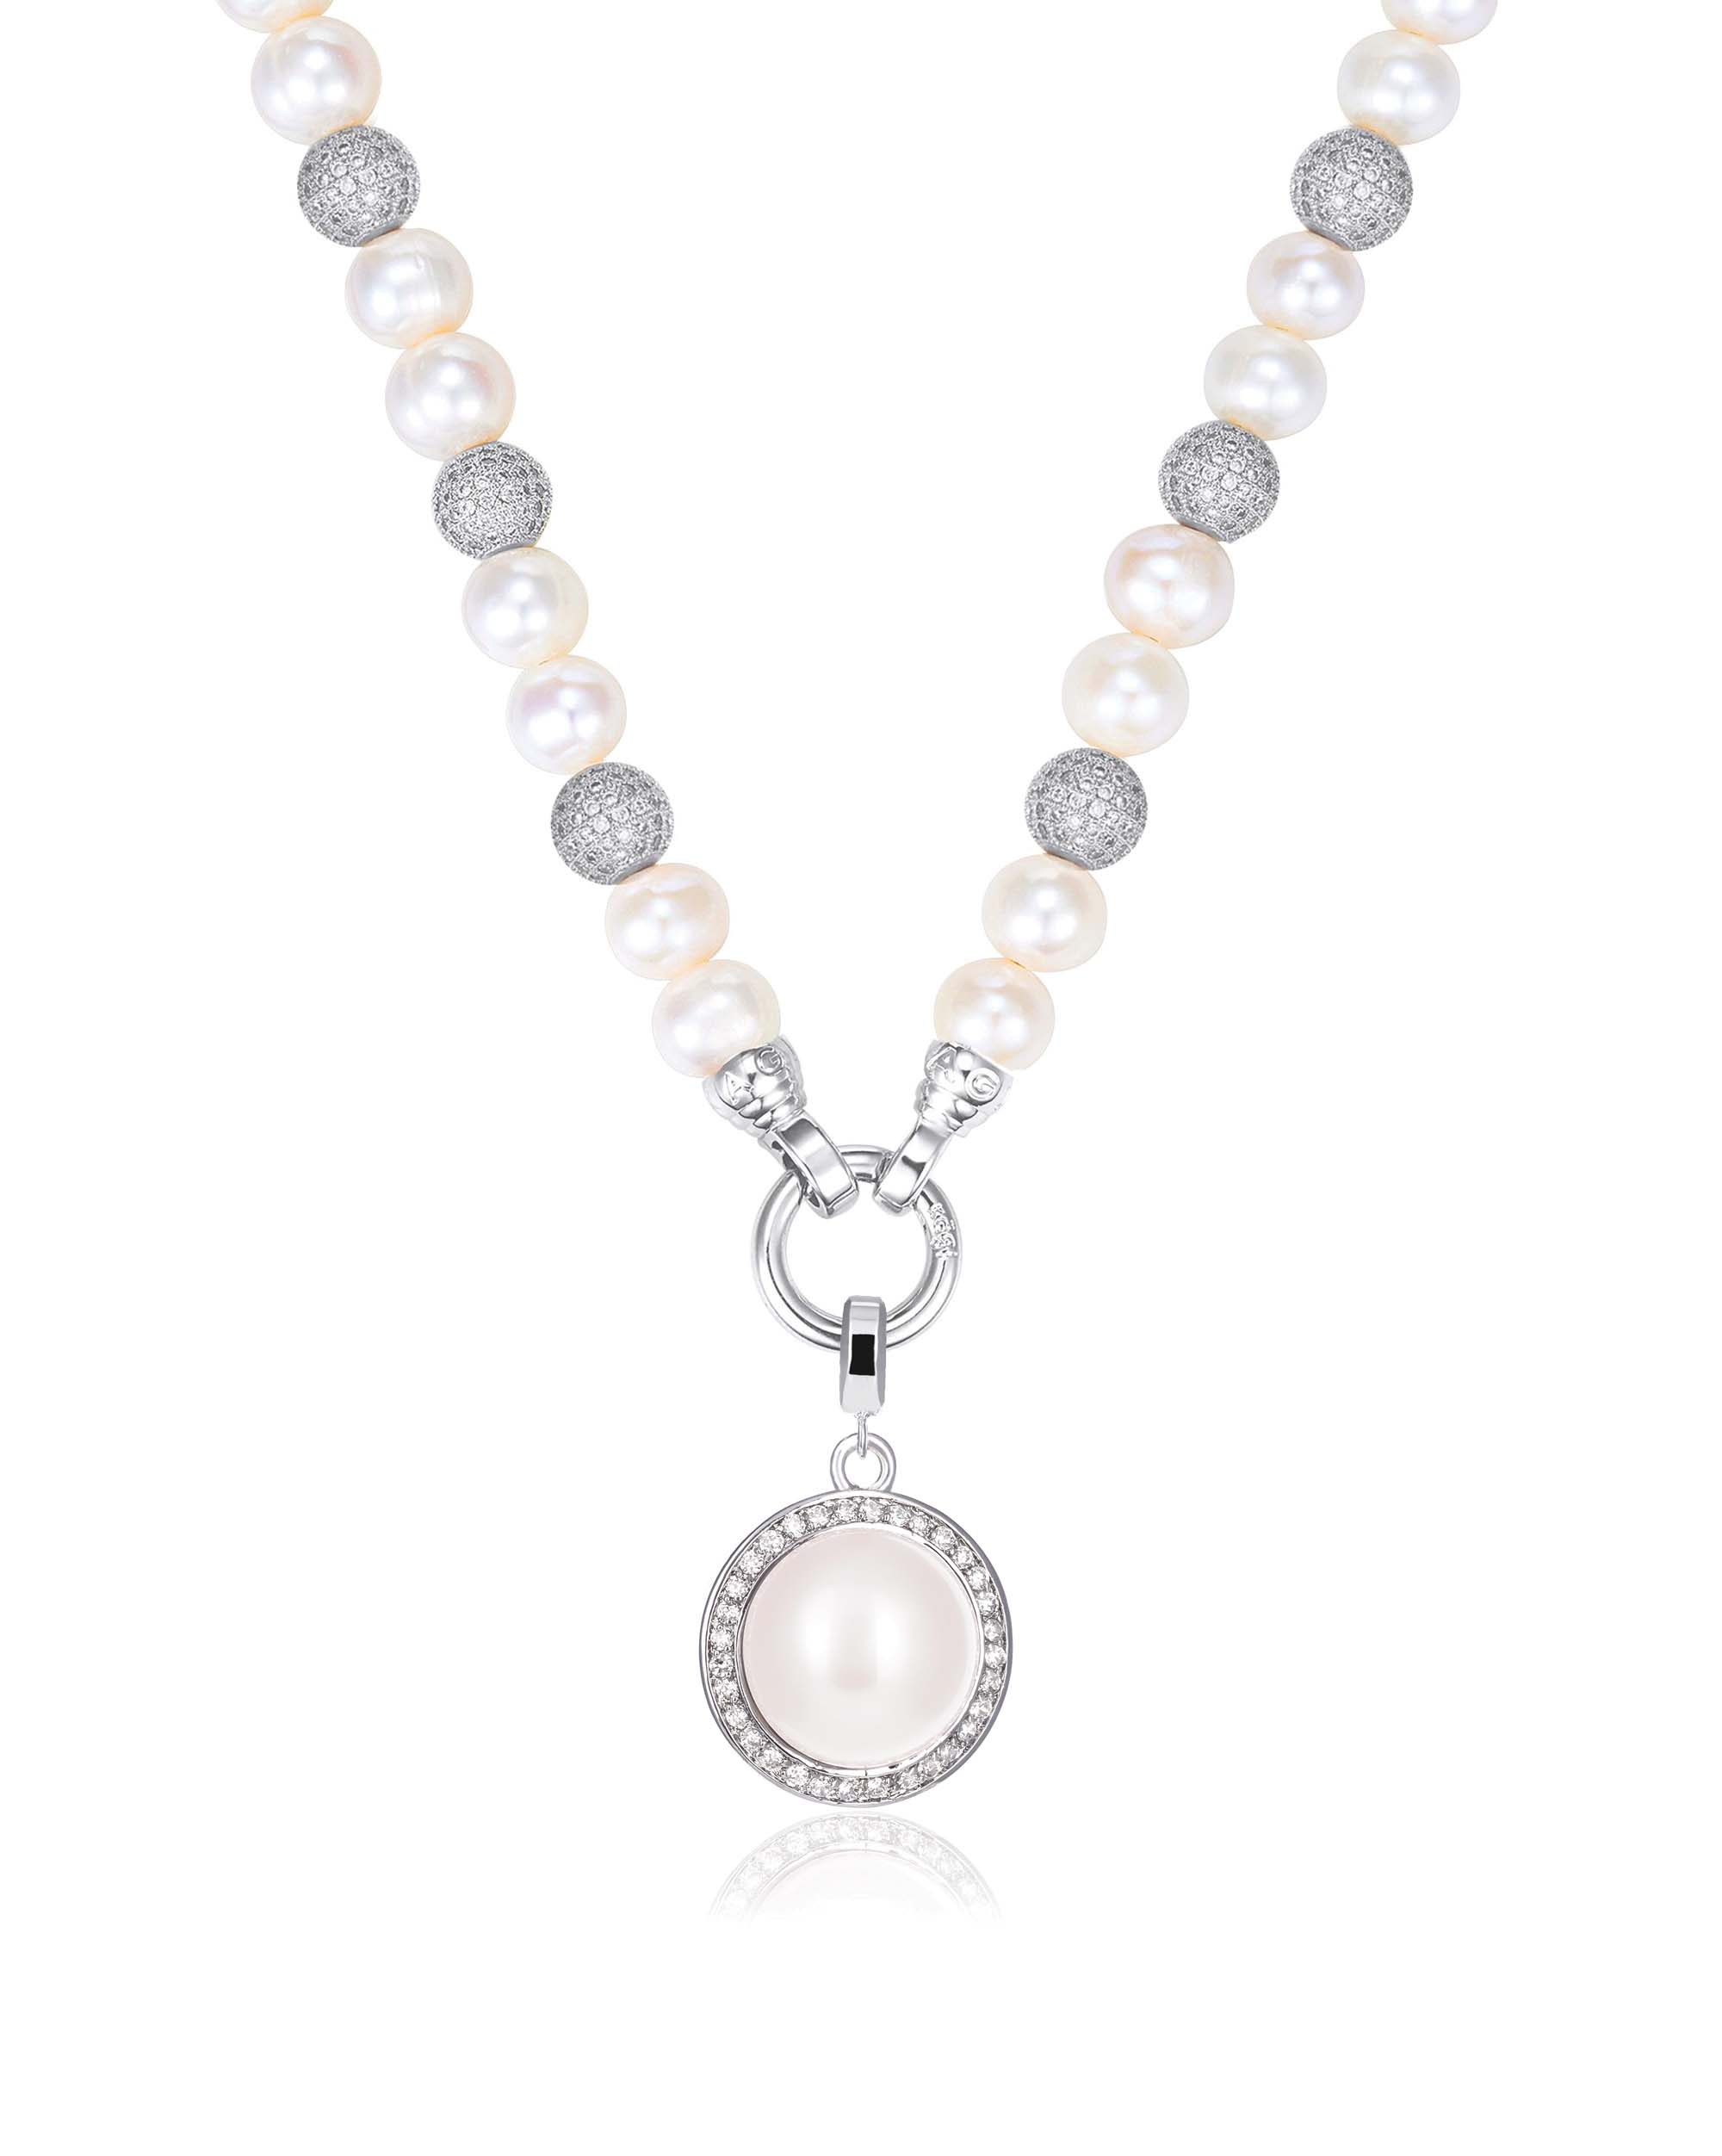 Kagi Pearl Luxe Necklace with Pearl Orbit Medium Pendant $139 www.kagi.net